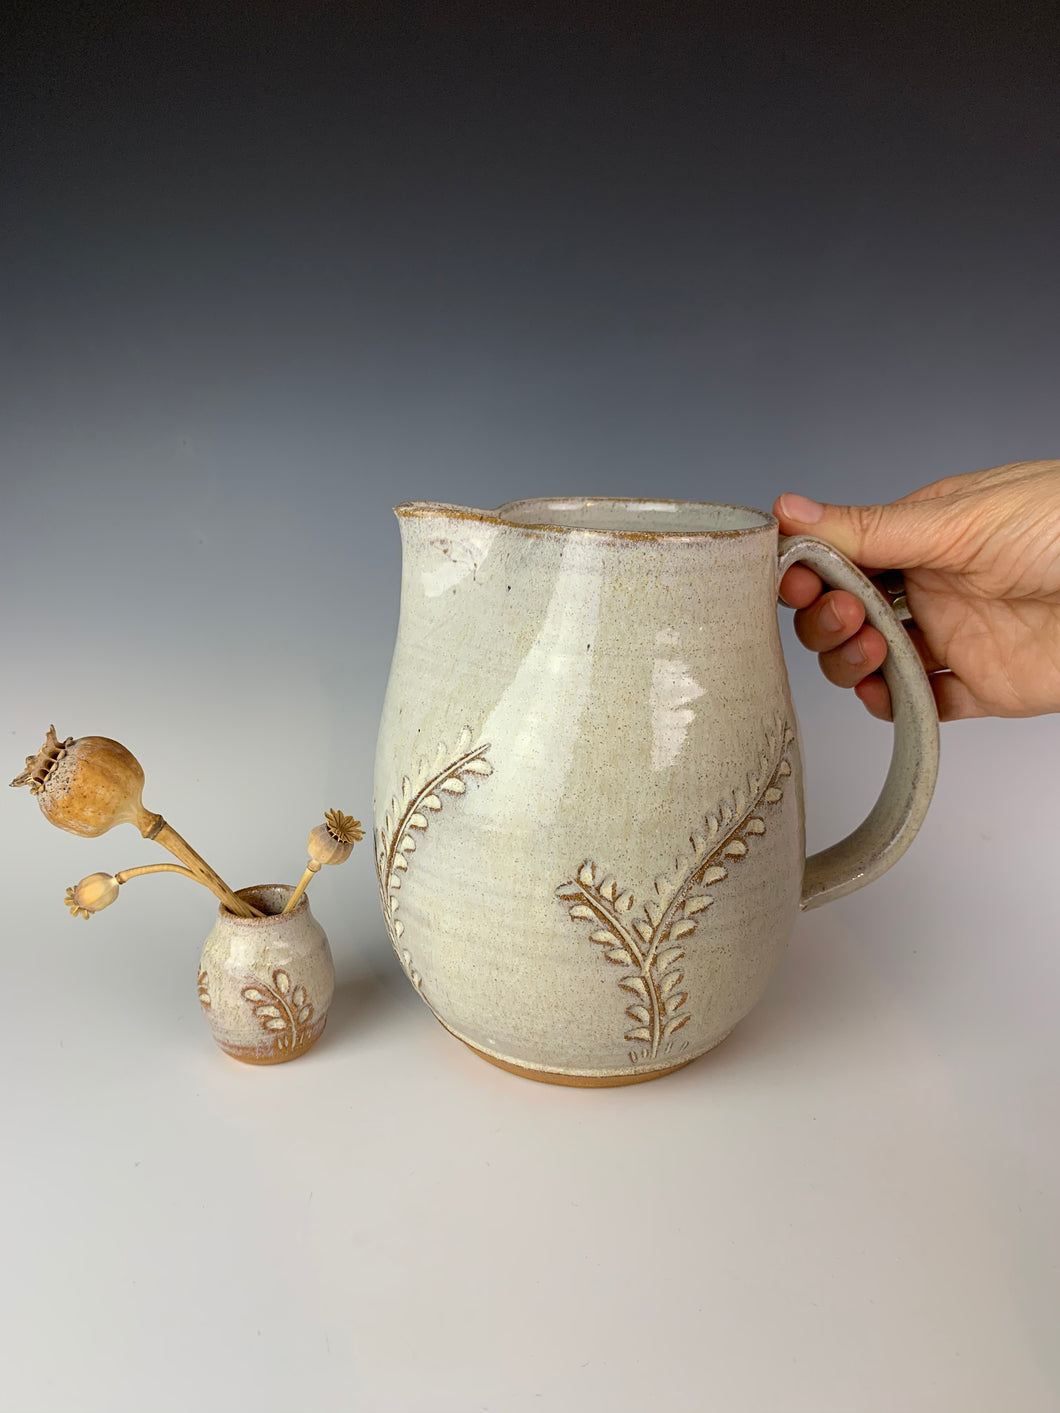 Carved pitcher in speckled white. the red clay and speckled white glaze work well together to show the carved detail. the carved pattern on the vase is reminiscent of vines or growing plants. shown here with a carved bud vase